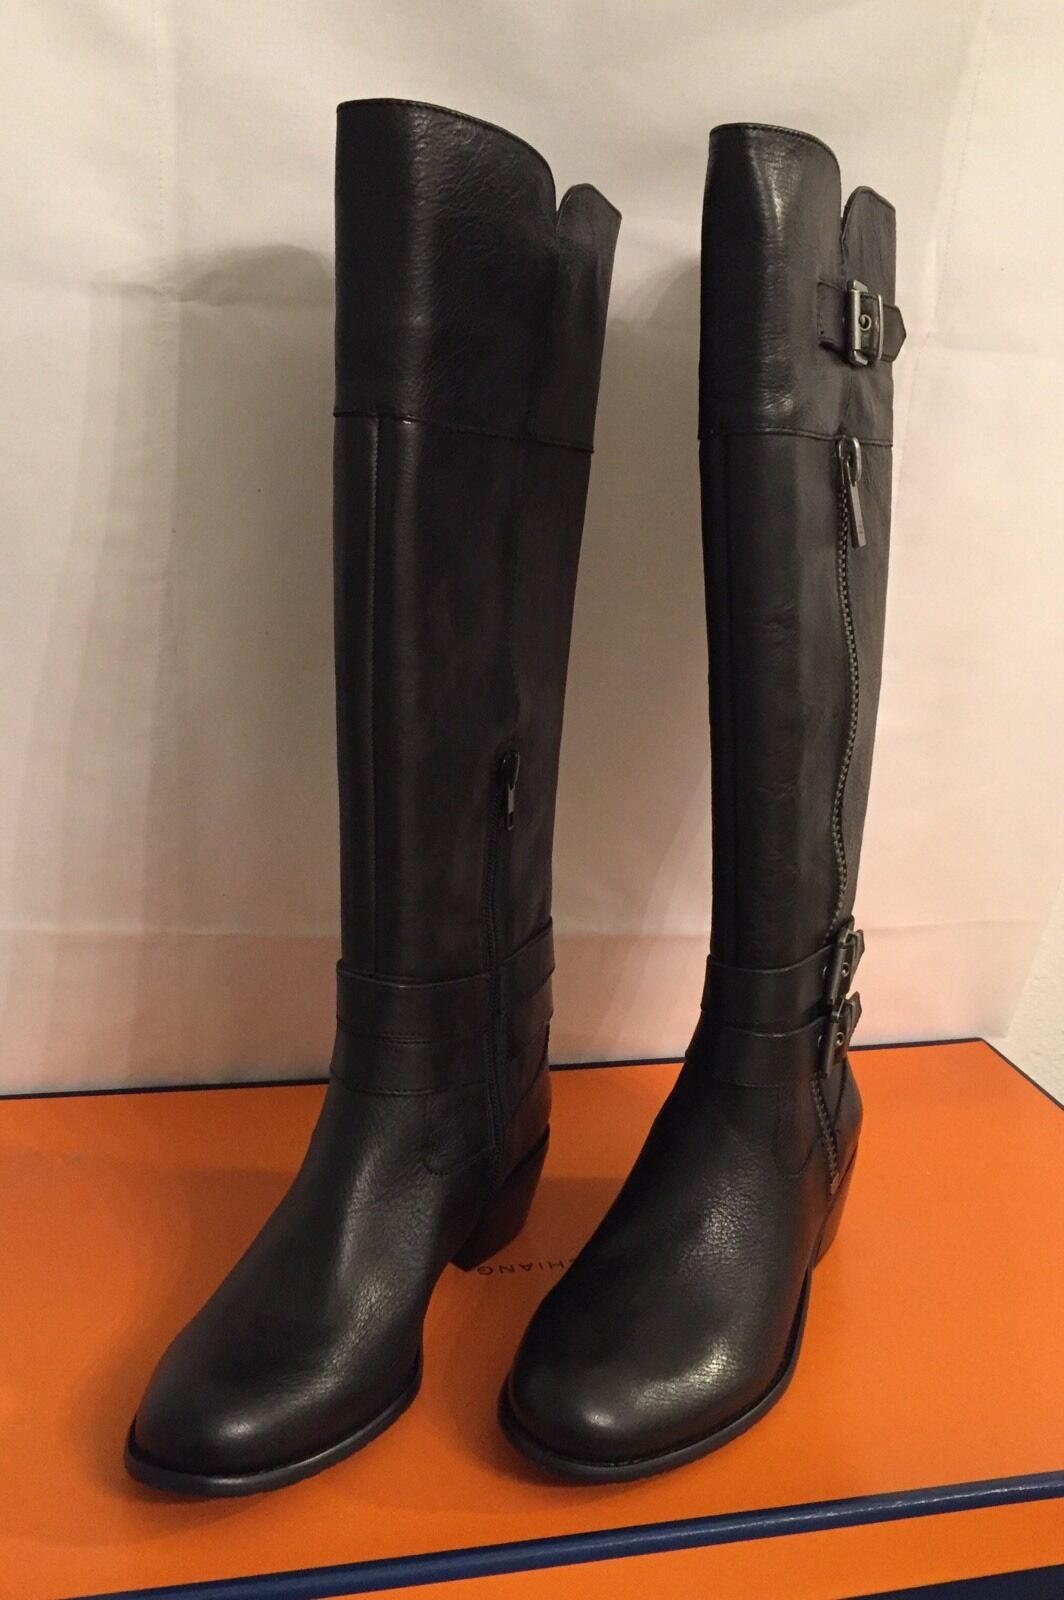 Arturo Chiang Black Tall Fashion Leather Boots (At-Benni) Size 6.5M